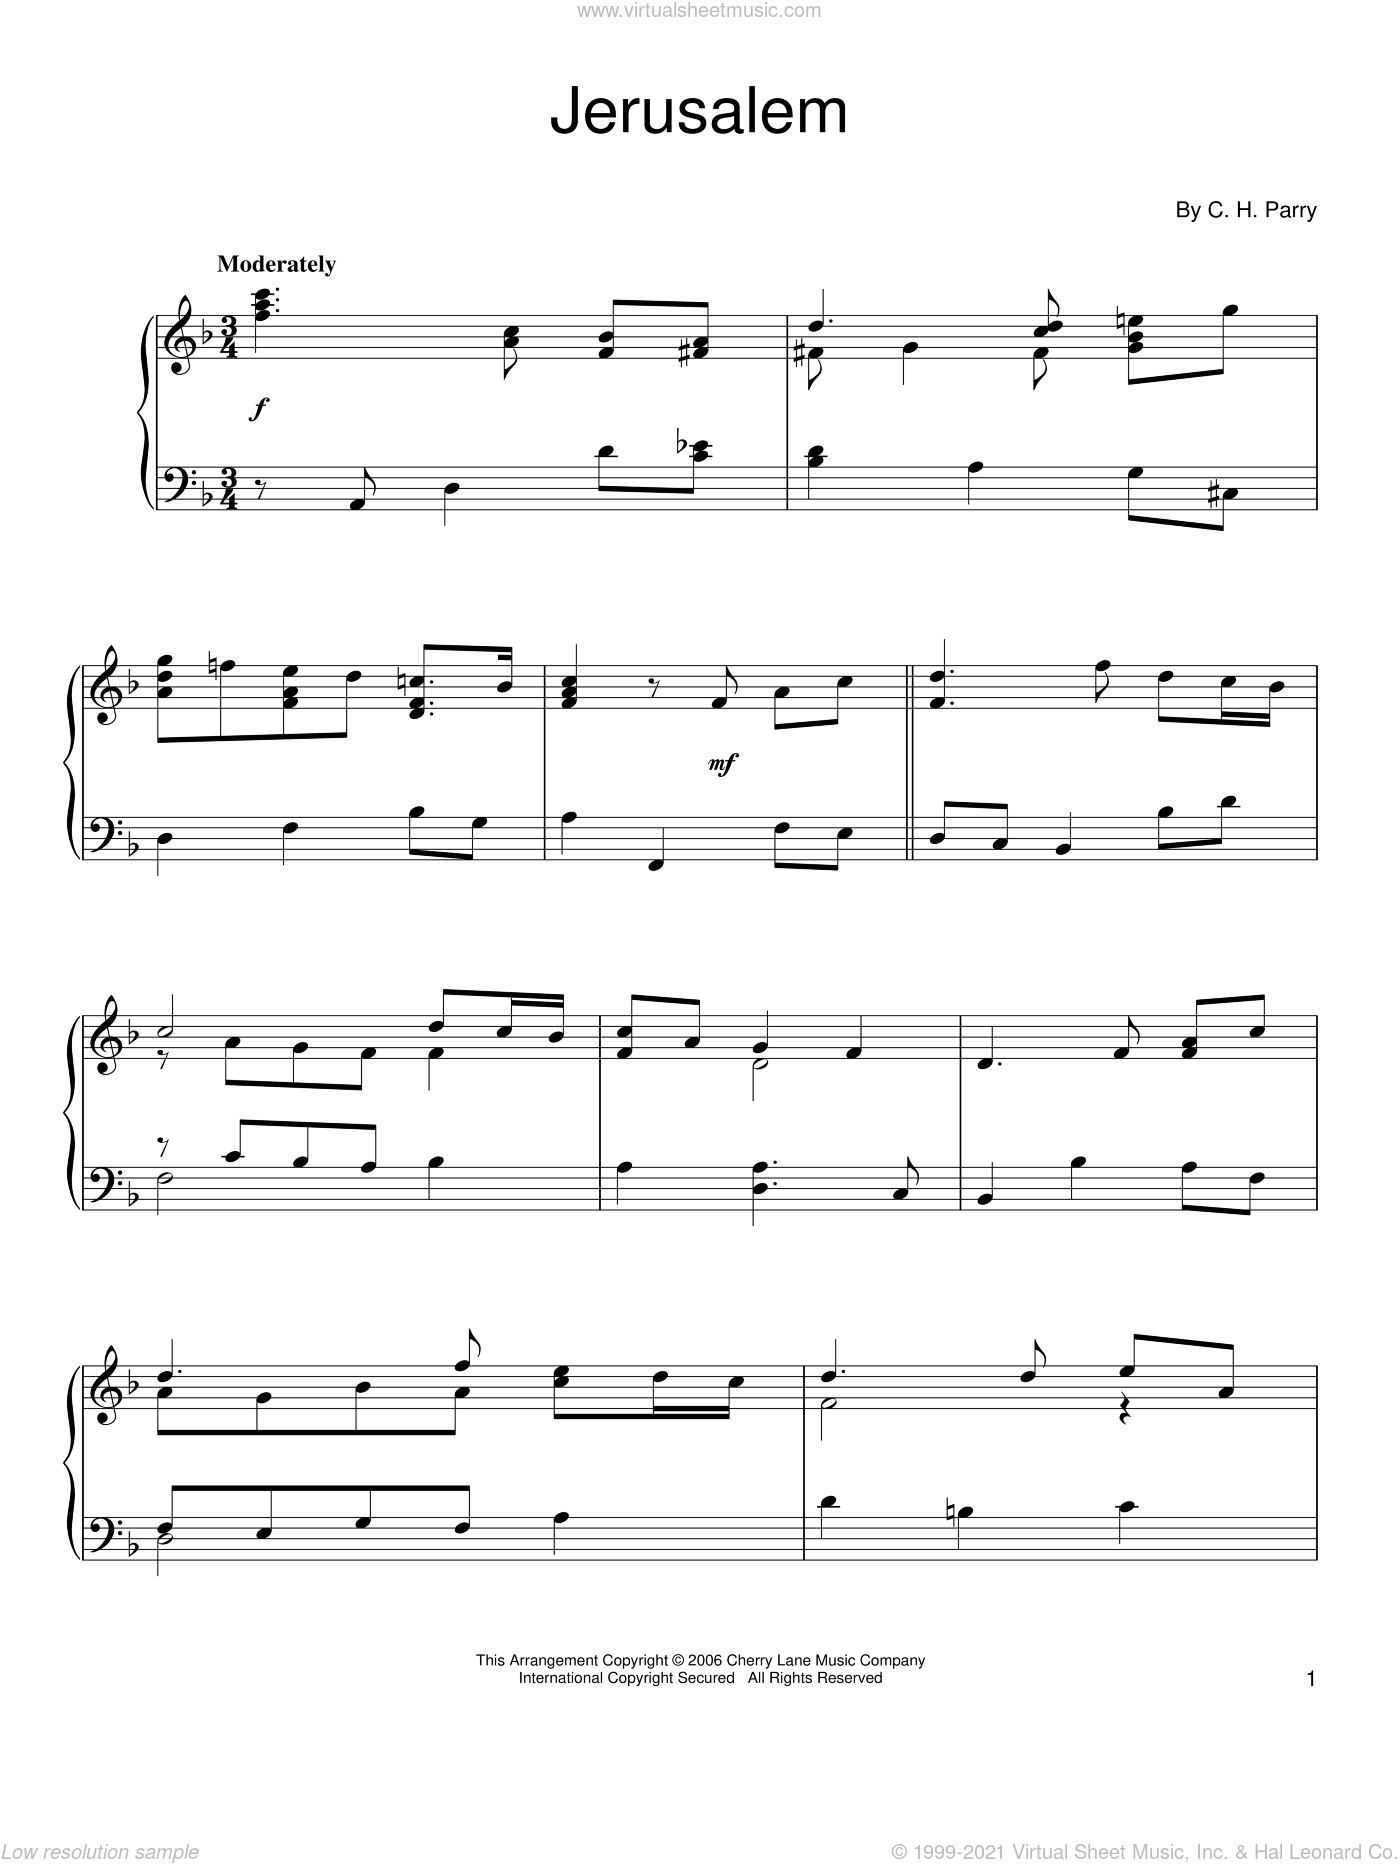 Jerusalem sheet music for piano solo by C.H. Parry